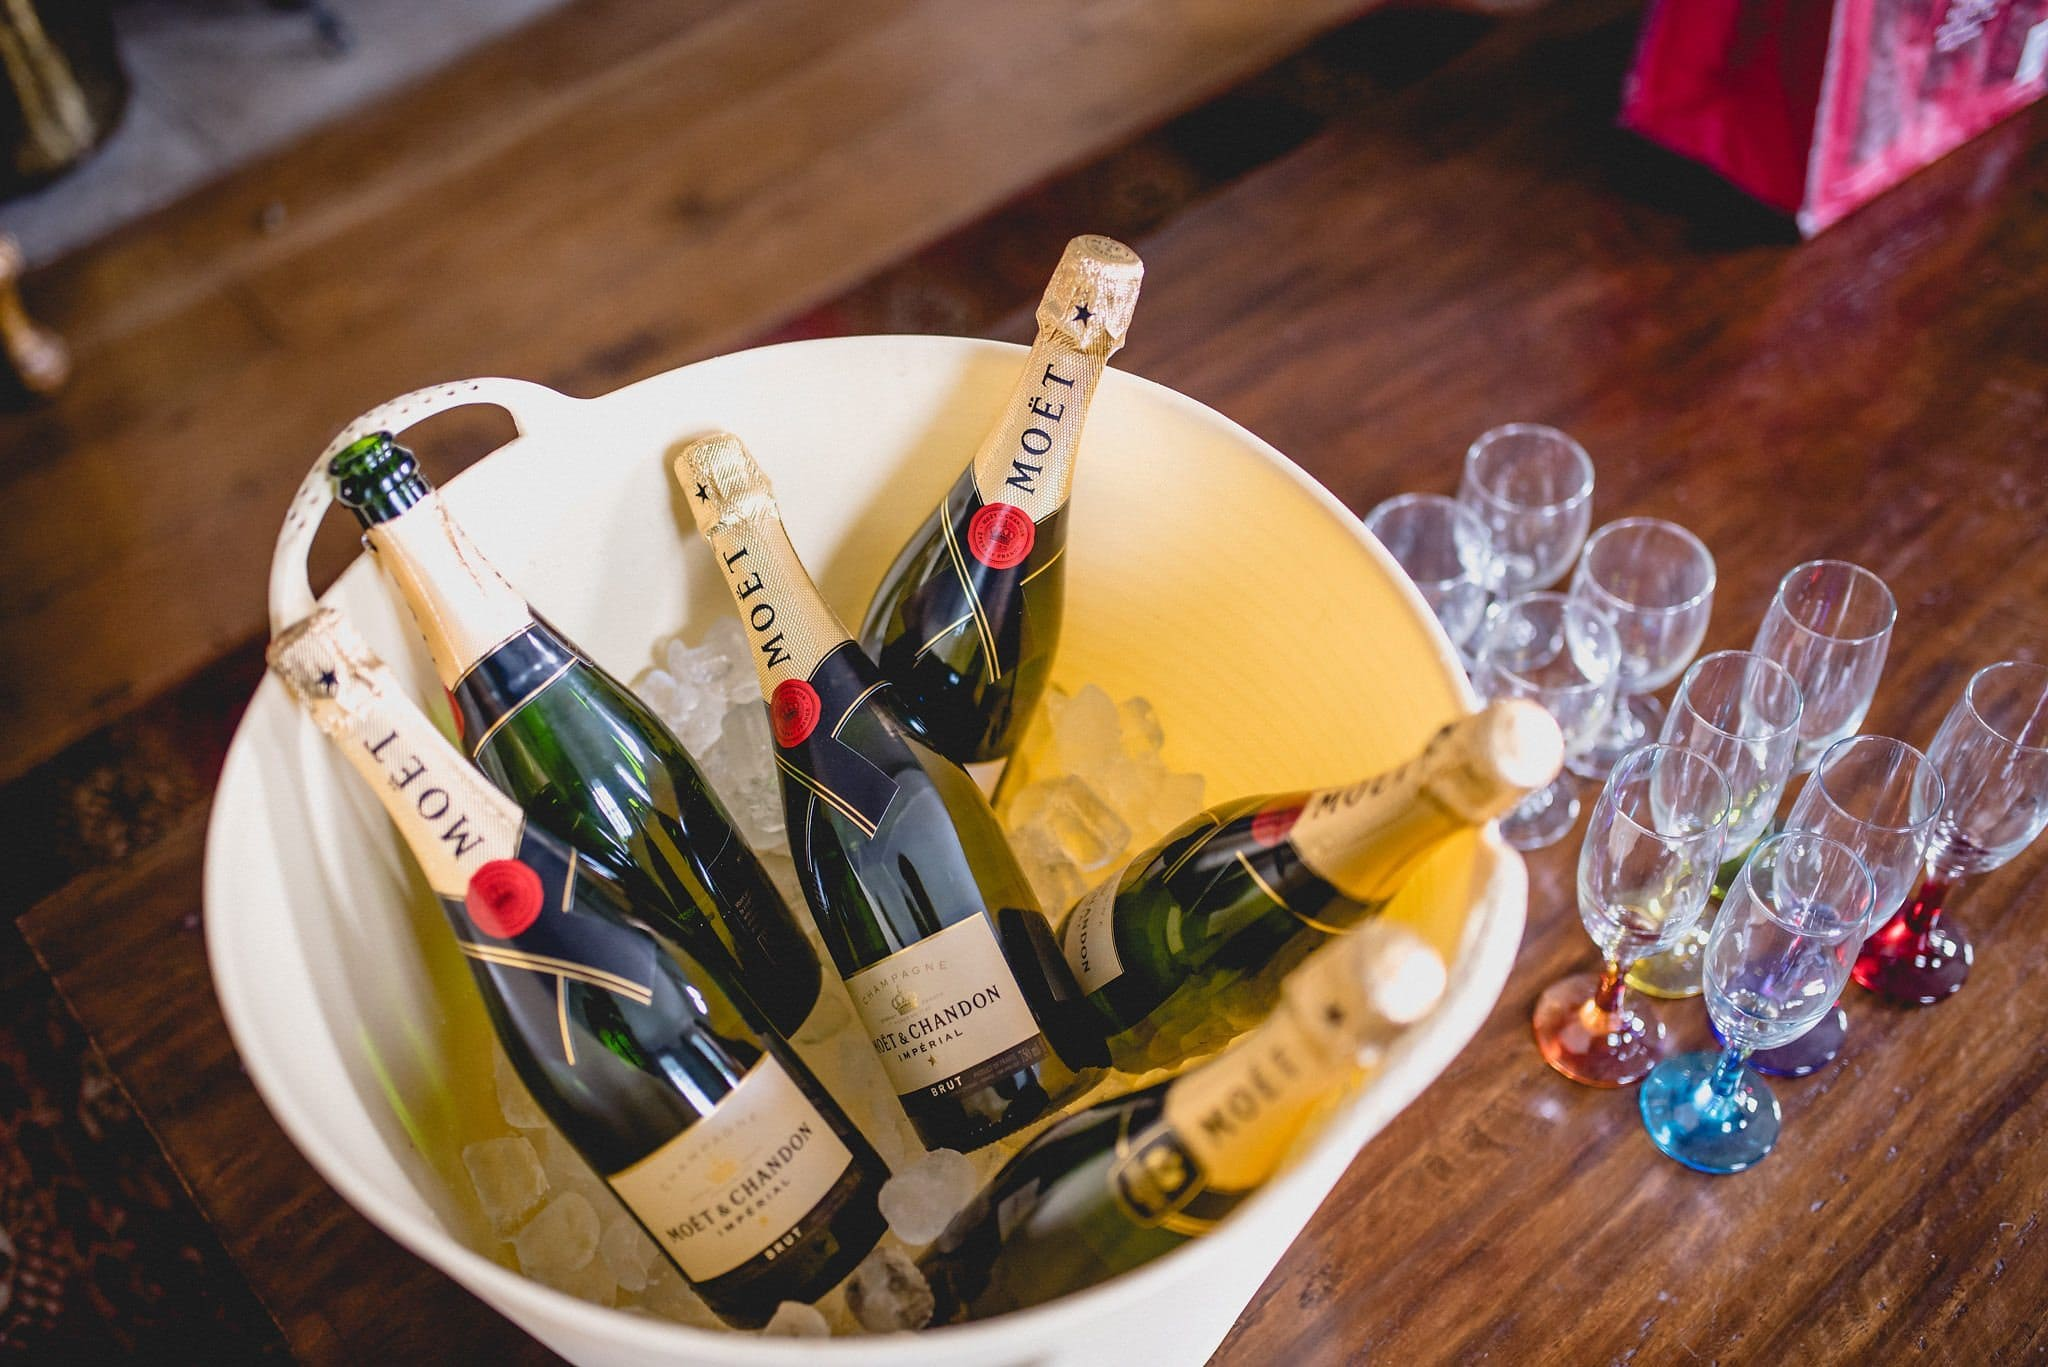 A bucket of champagne and glasses